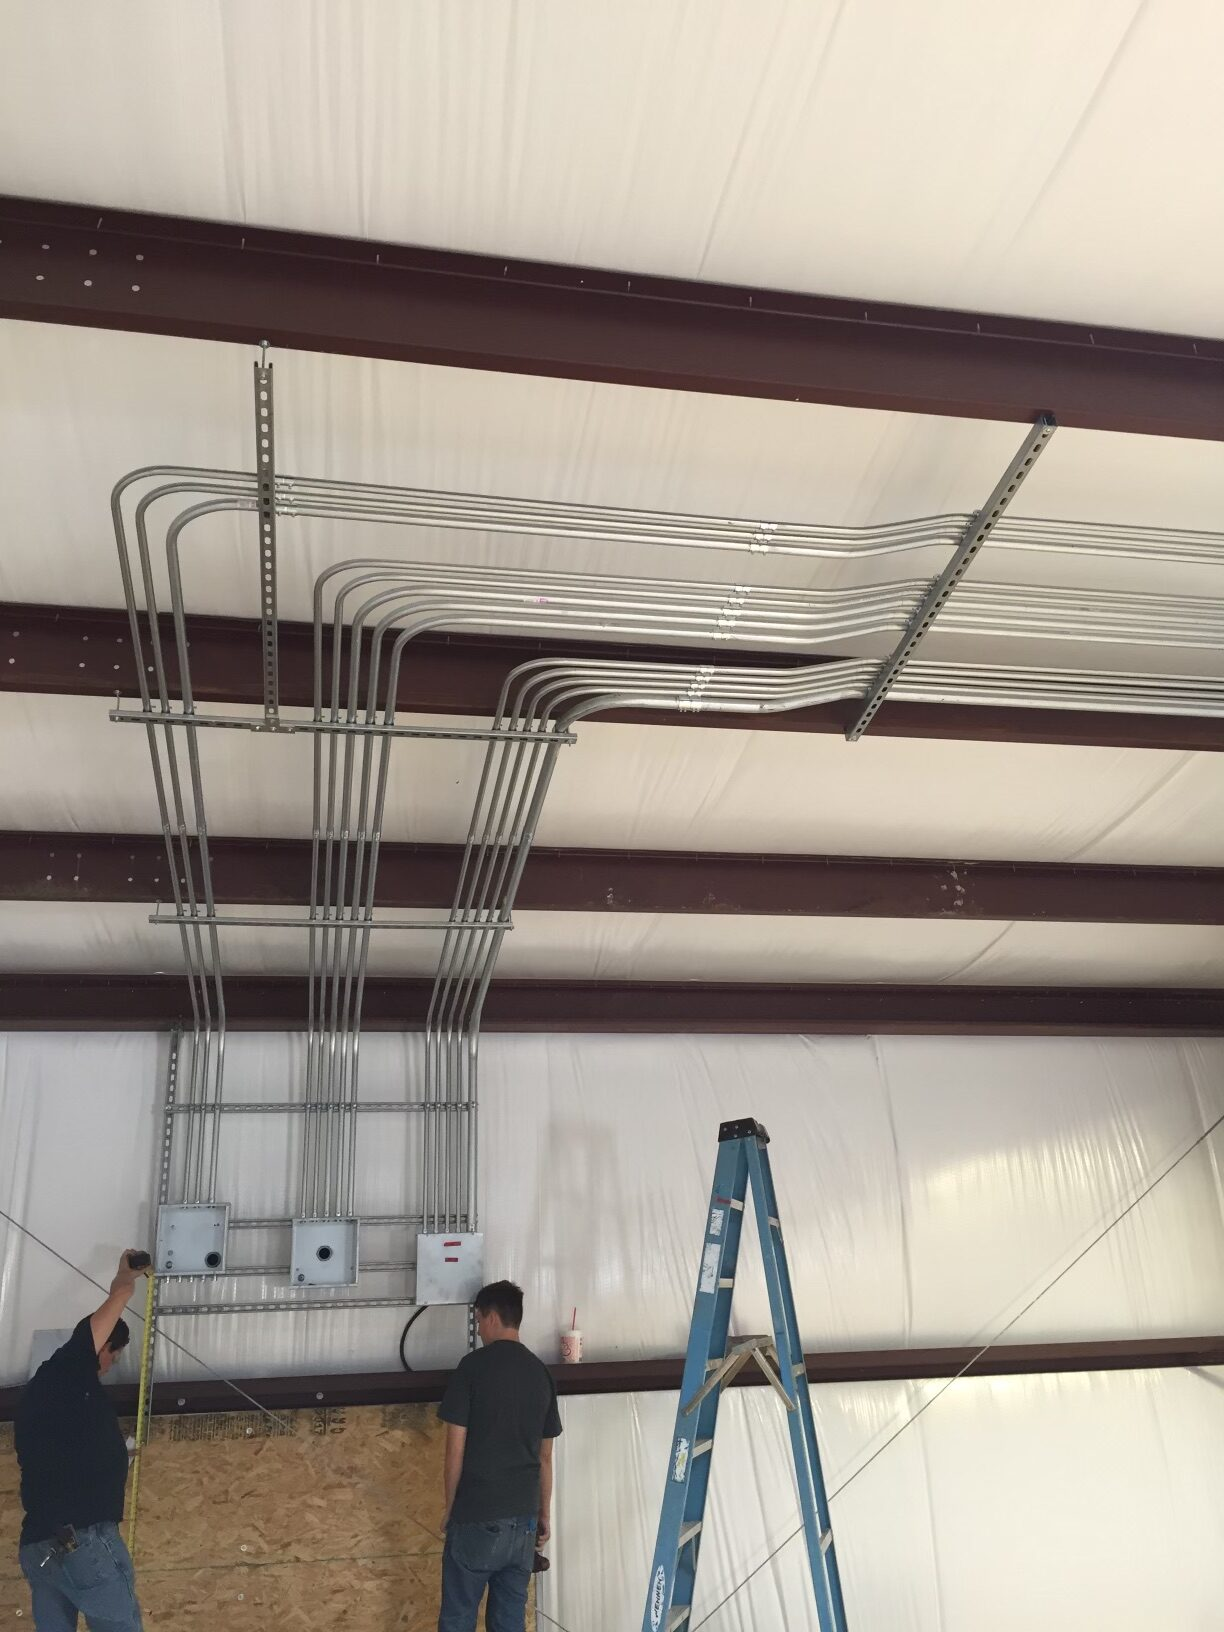 conduit pipe electrical panels commercial construction warehouse